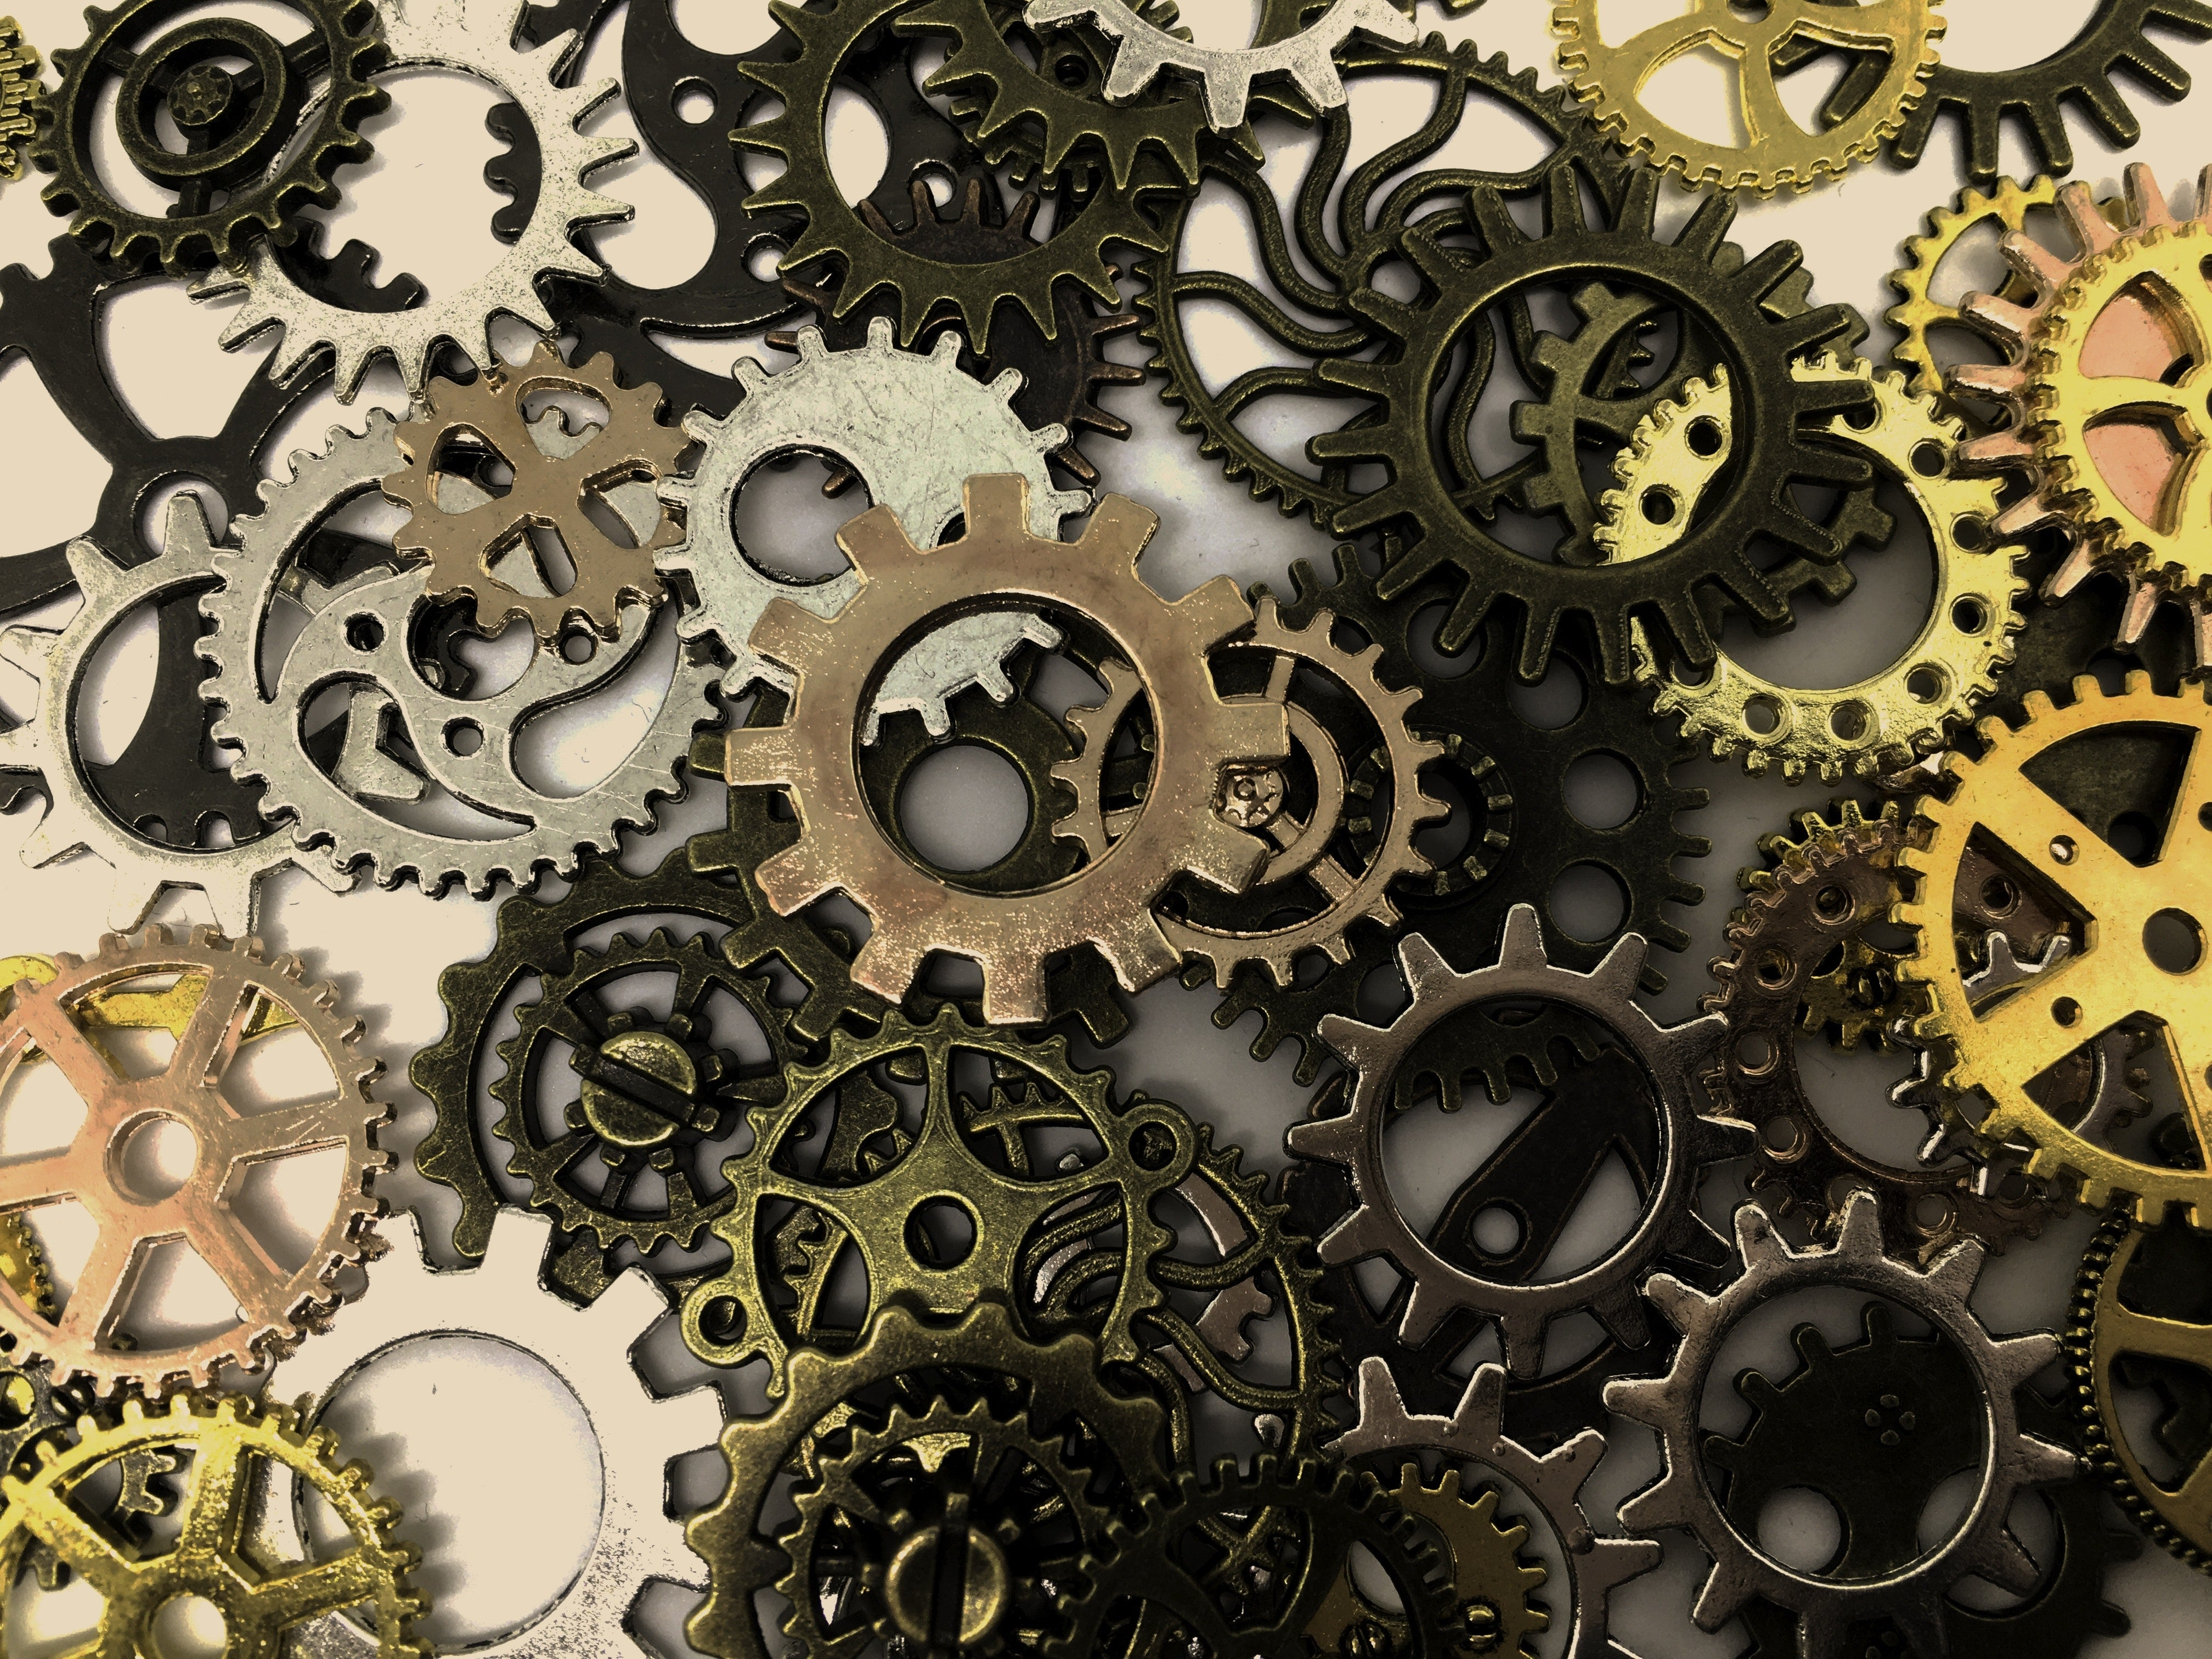 new-now-salvage-yard-art-clockwork-cogs-414579